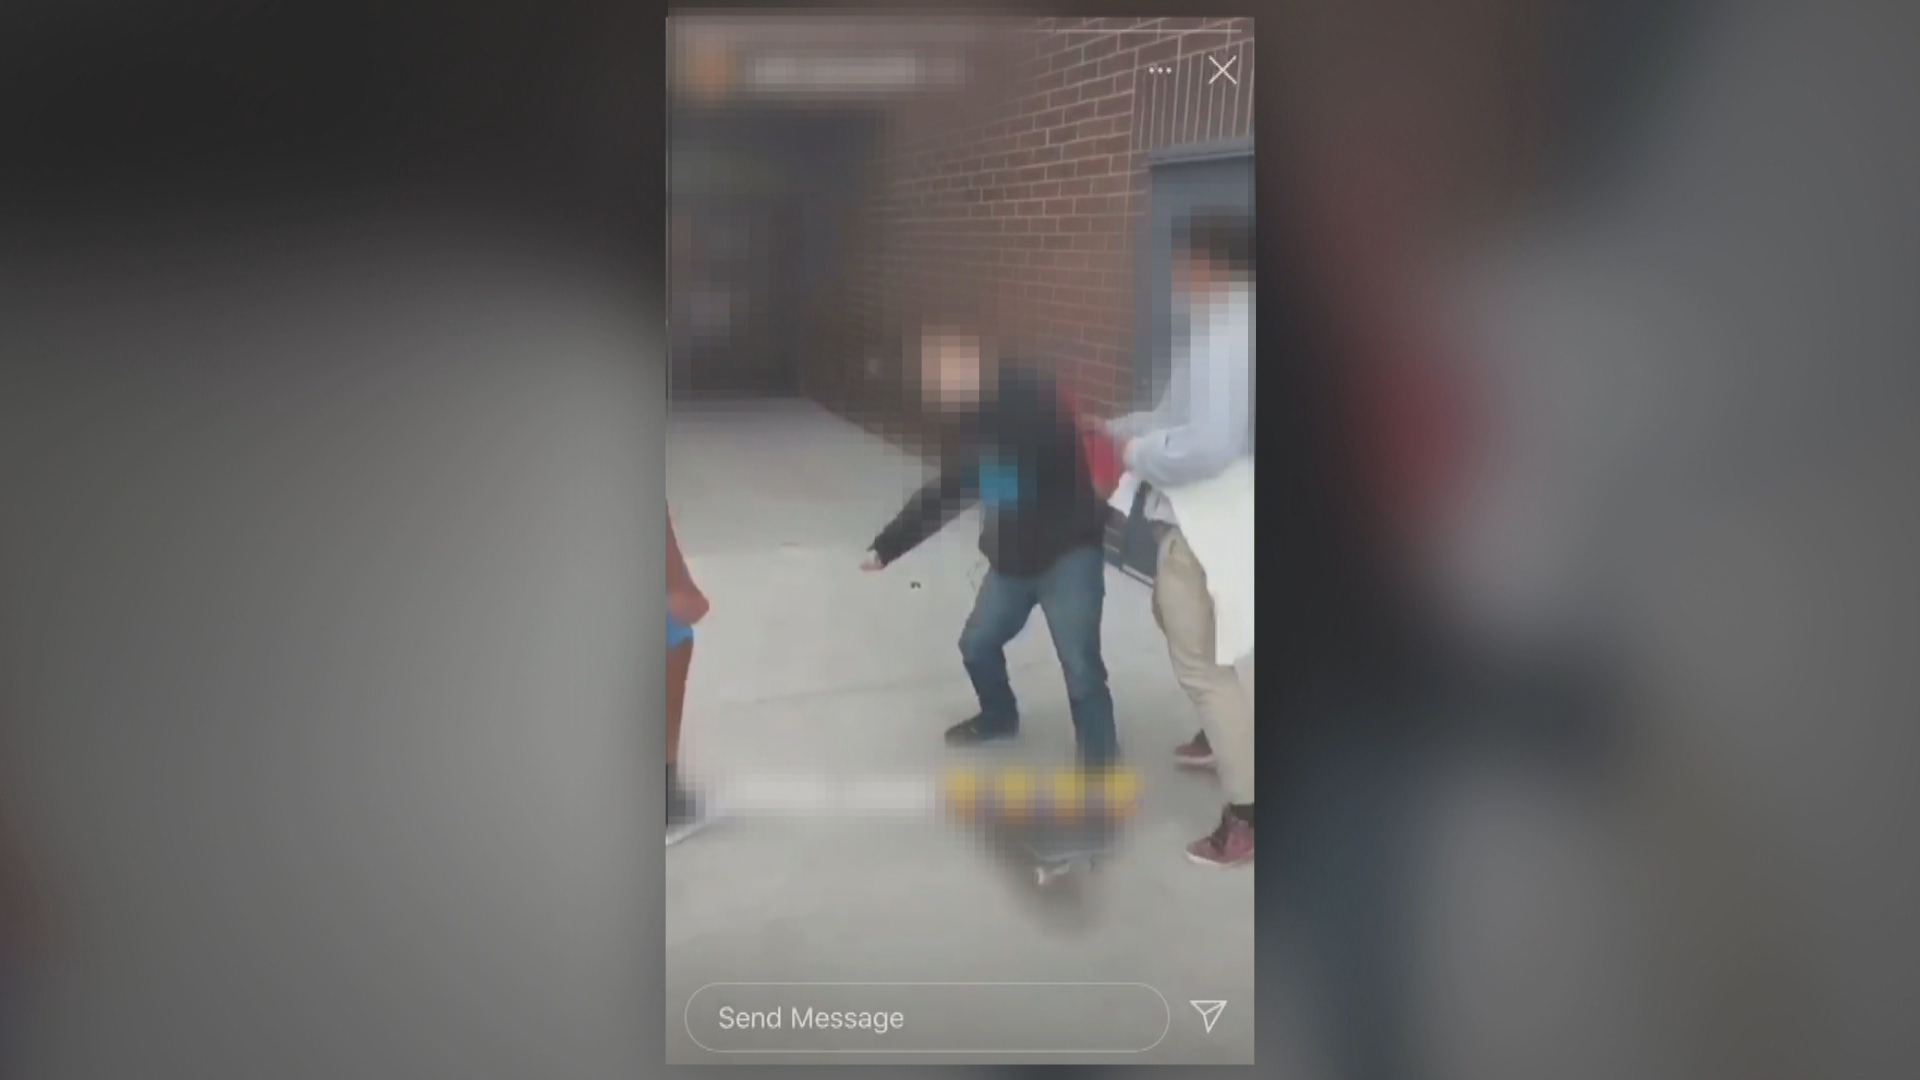 Bullies punch a teen in the face in an attack caught on video. (Video screengrab)